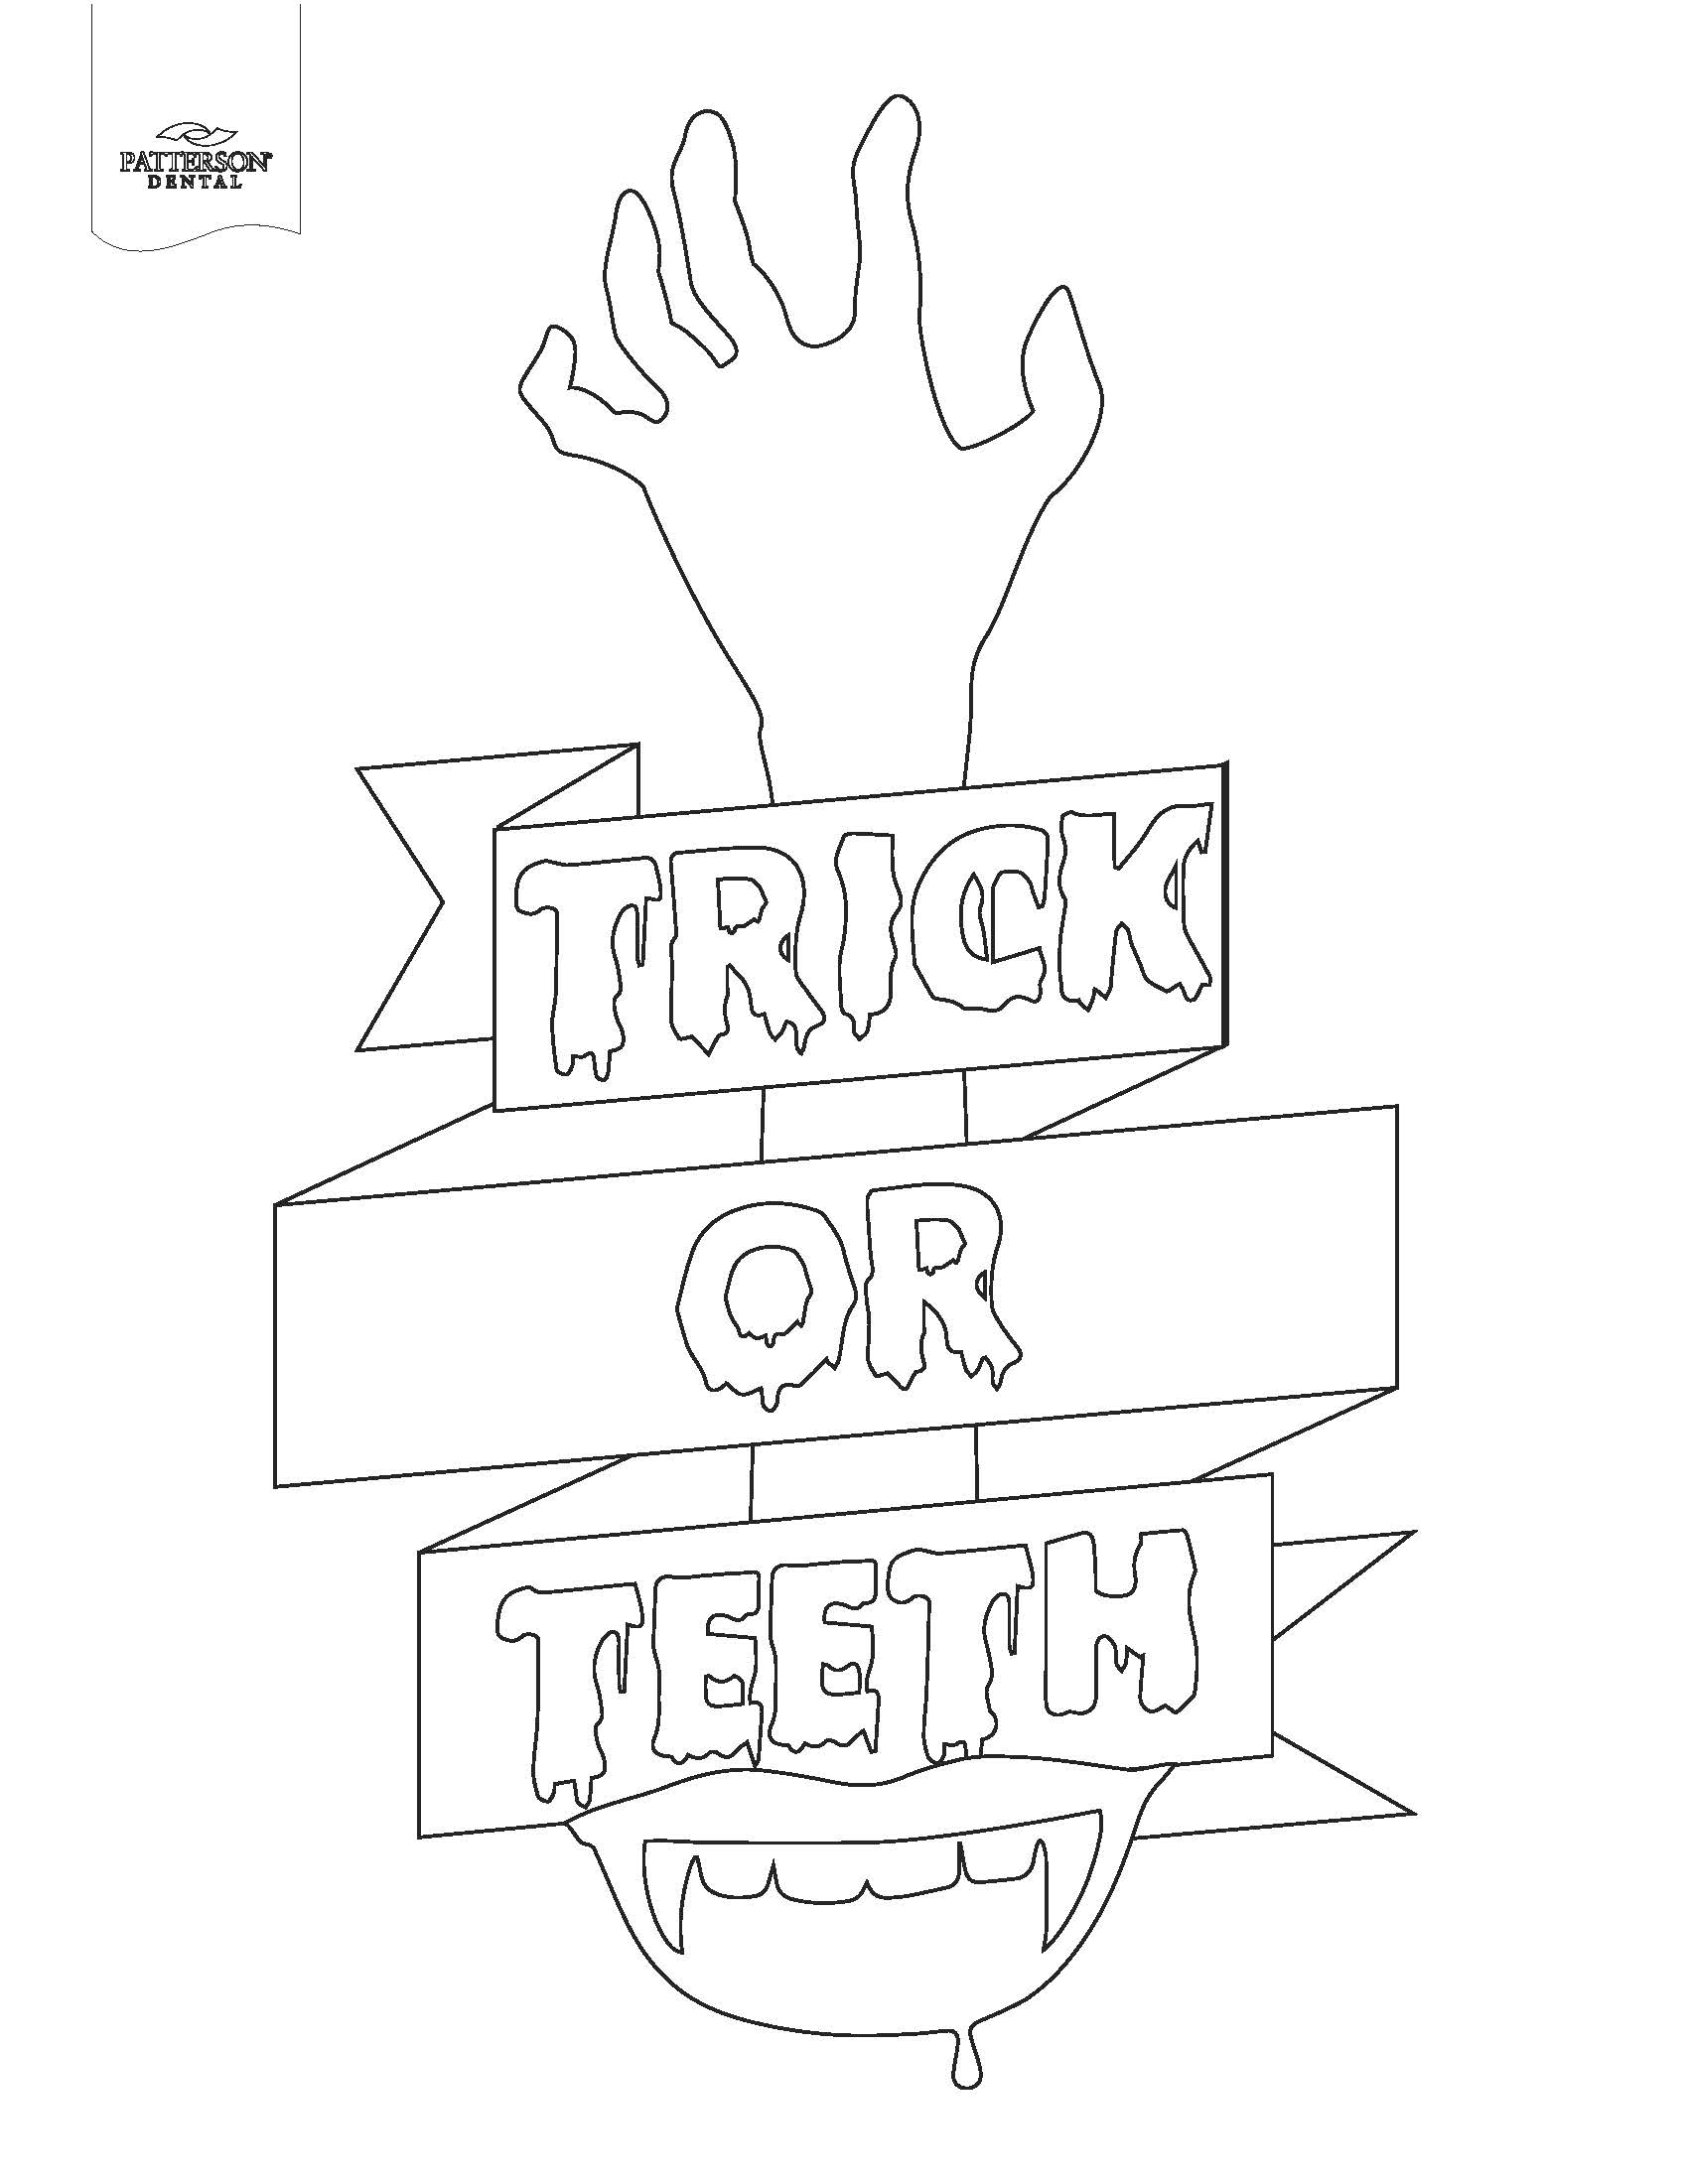 DIY Dental Themed quot Punkins quot